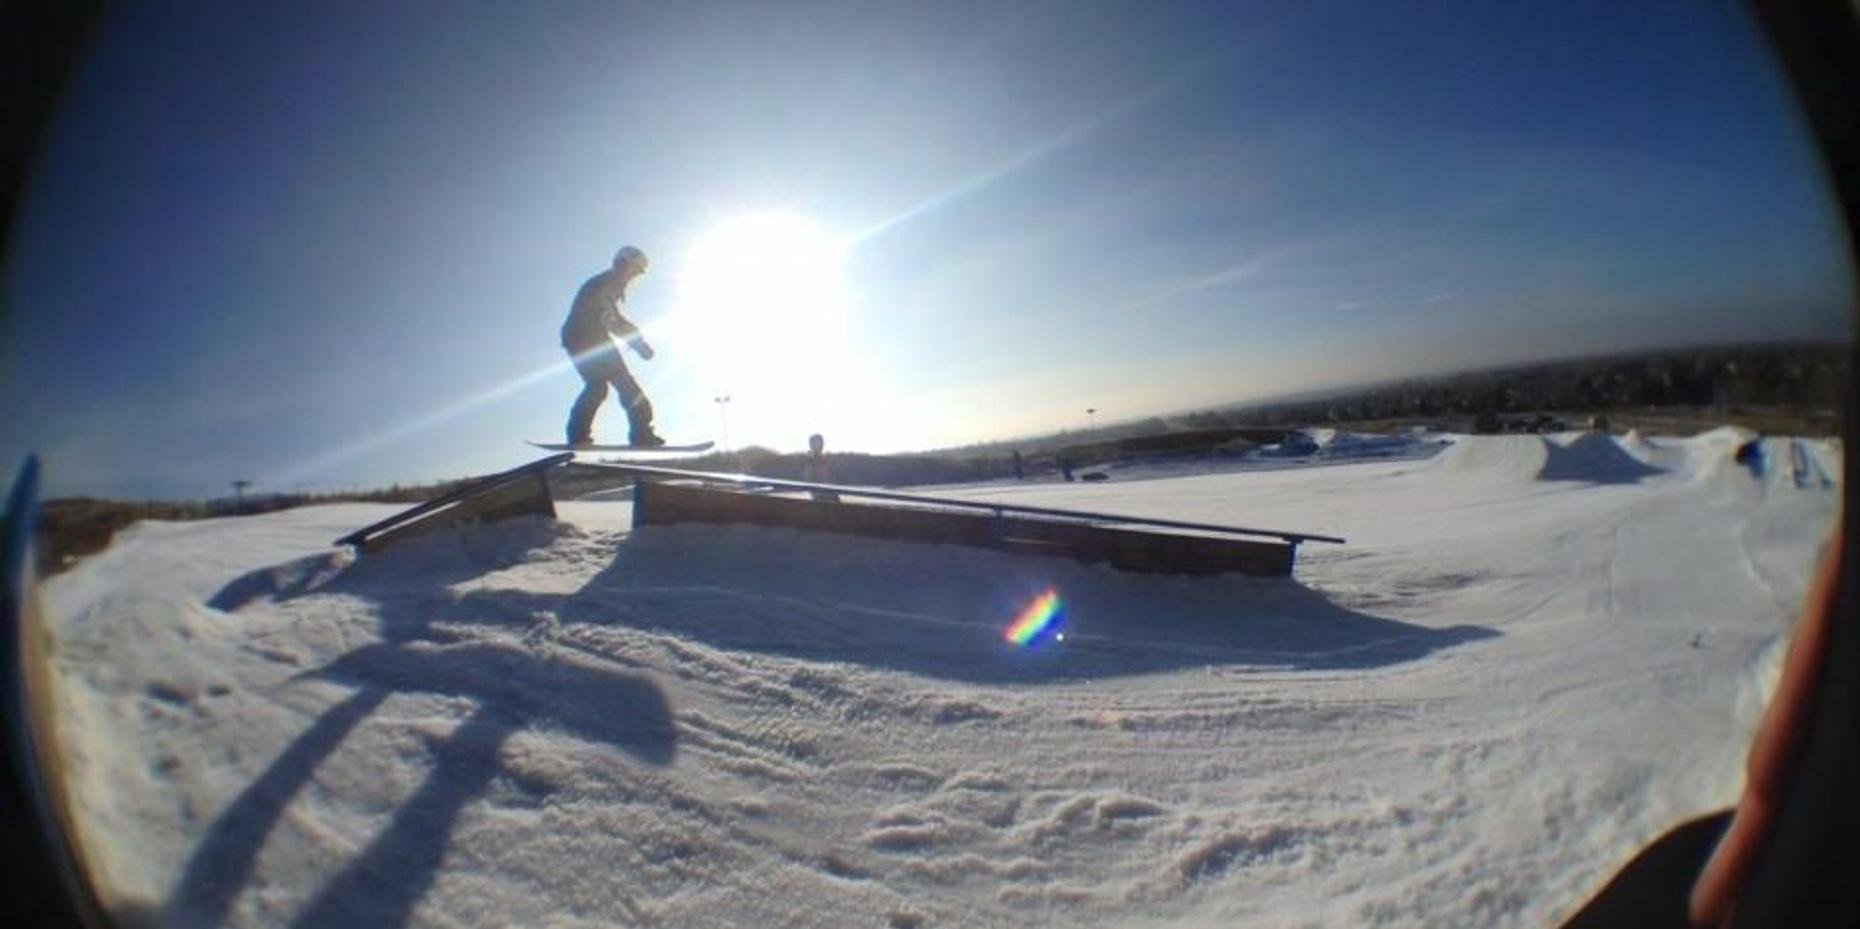 Midday Tubing, Snowboarding, and Skiing in Eagle